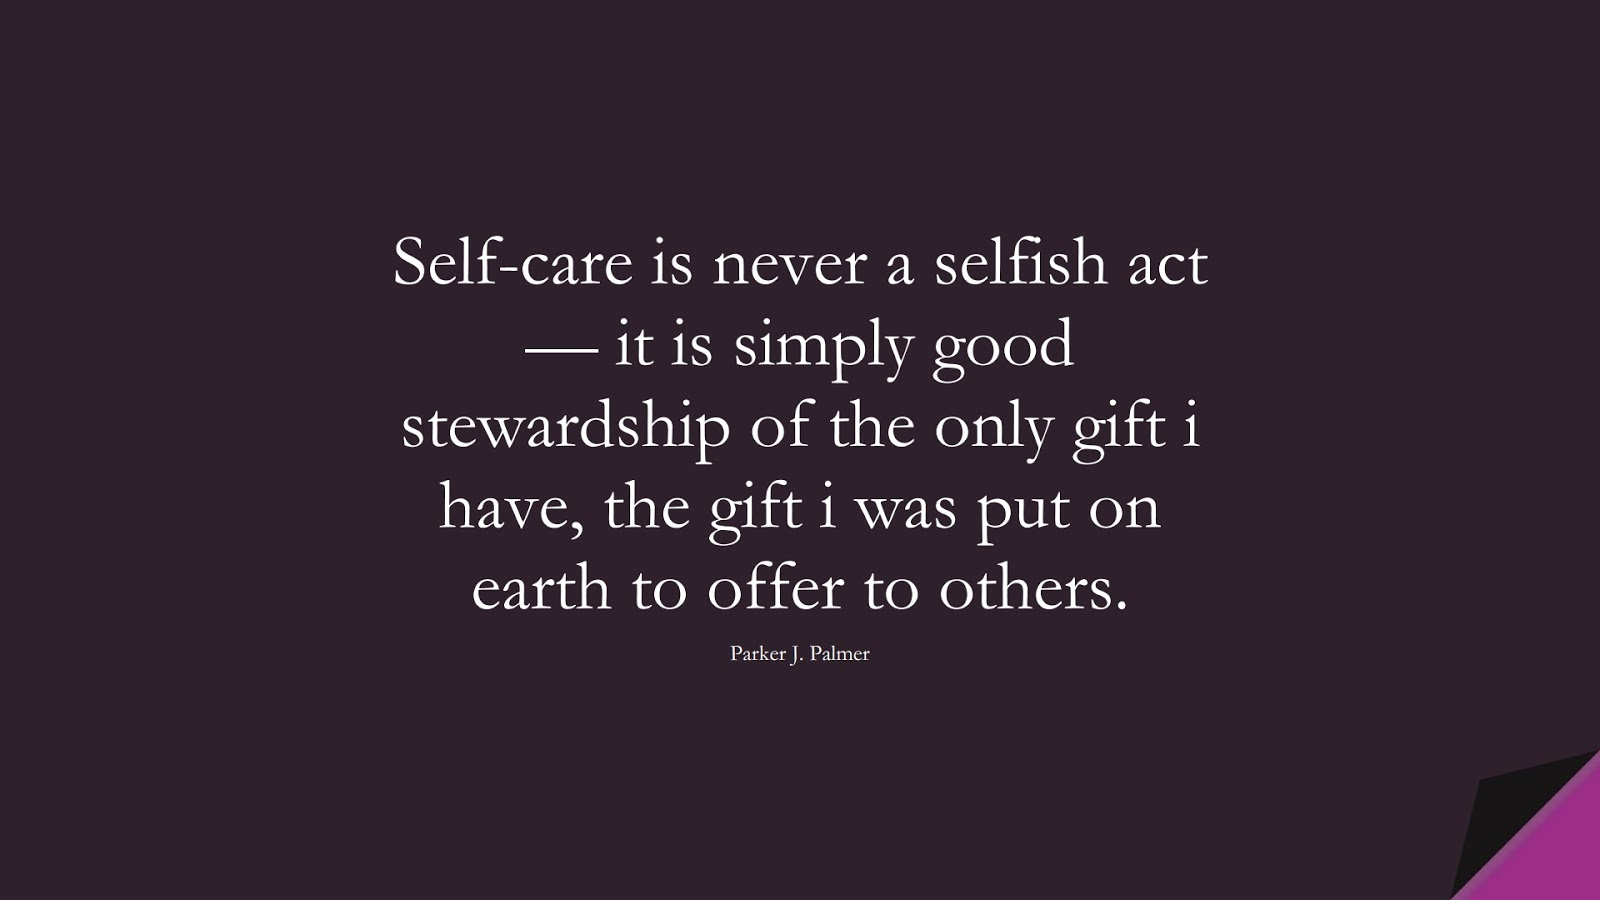 Self-care is never a selfish act — it is simply good stewardship of the only gift i have, the gift i was put on earth to offer to others. (Parker J. Palmer);  #SelfEsteemQuotes